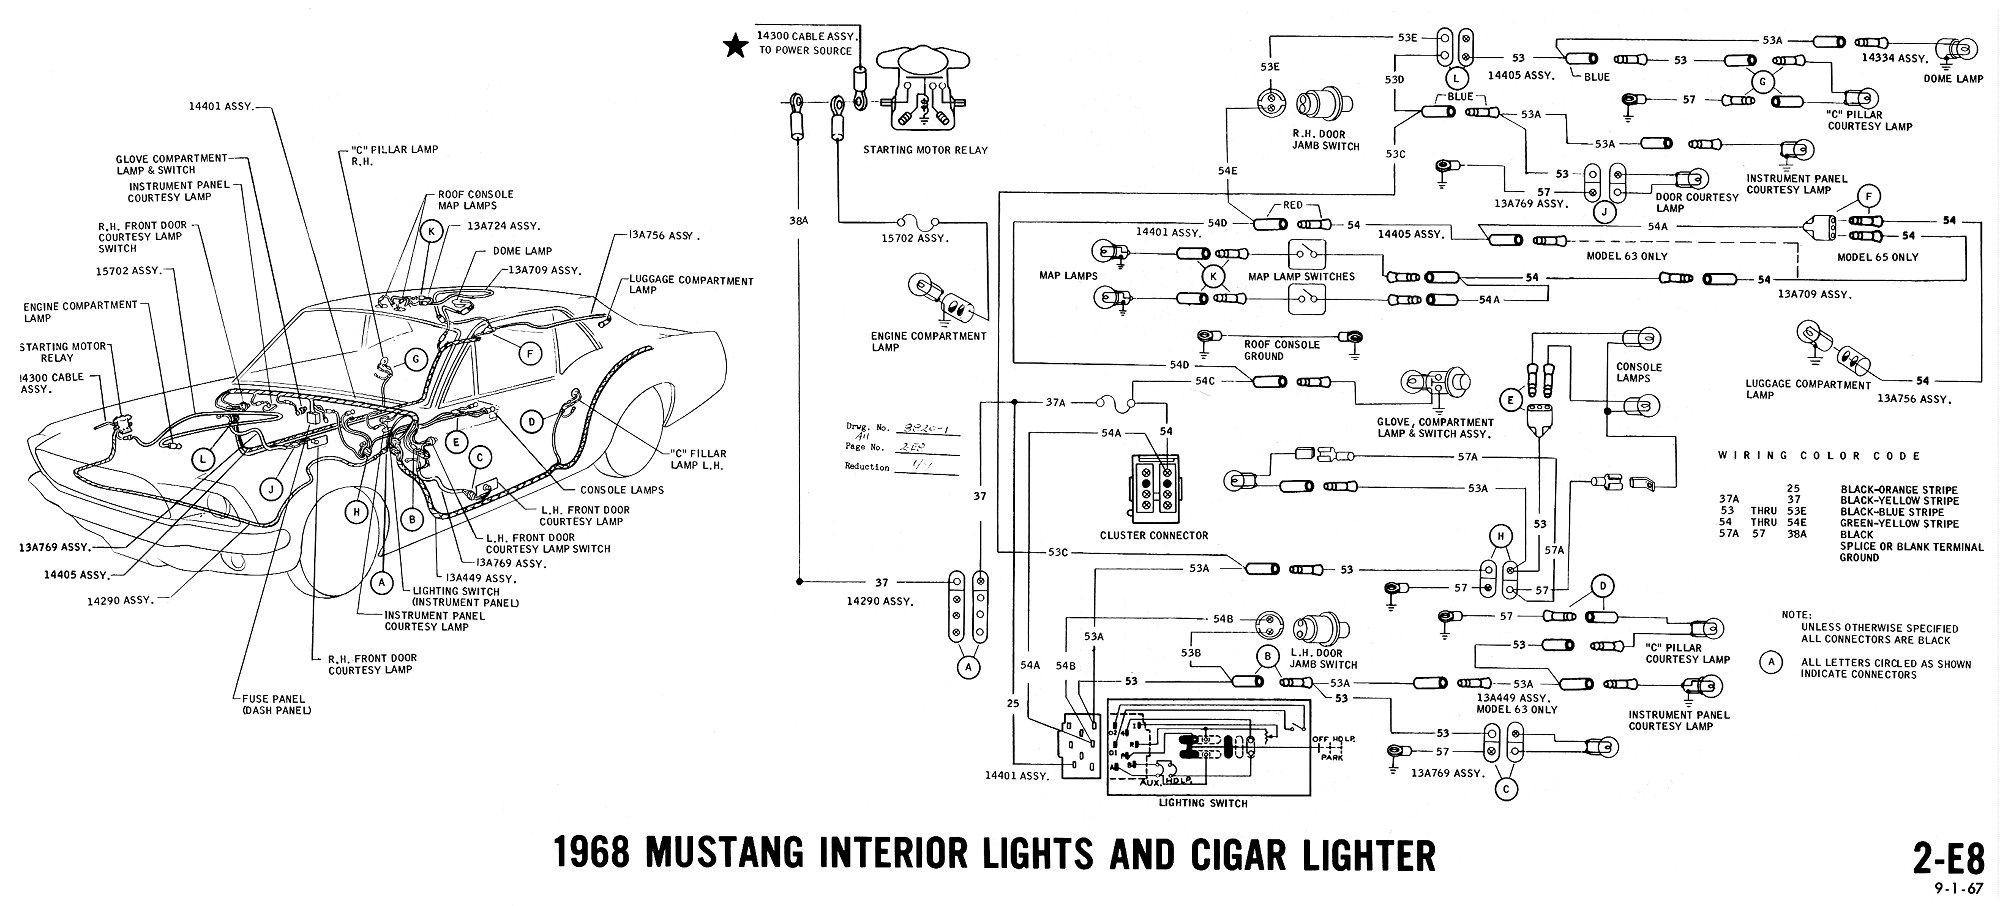 E8 1968 mustang wiring diagrams evolving software 1967 mustang ignition switch wiring diagram at gsmportal.co